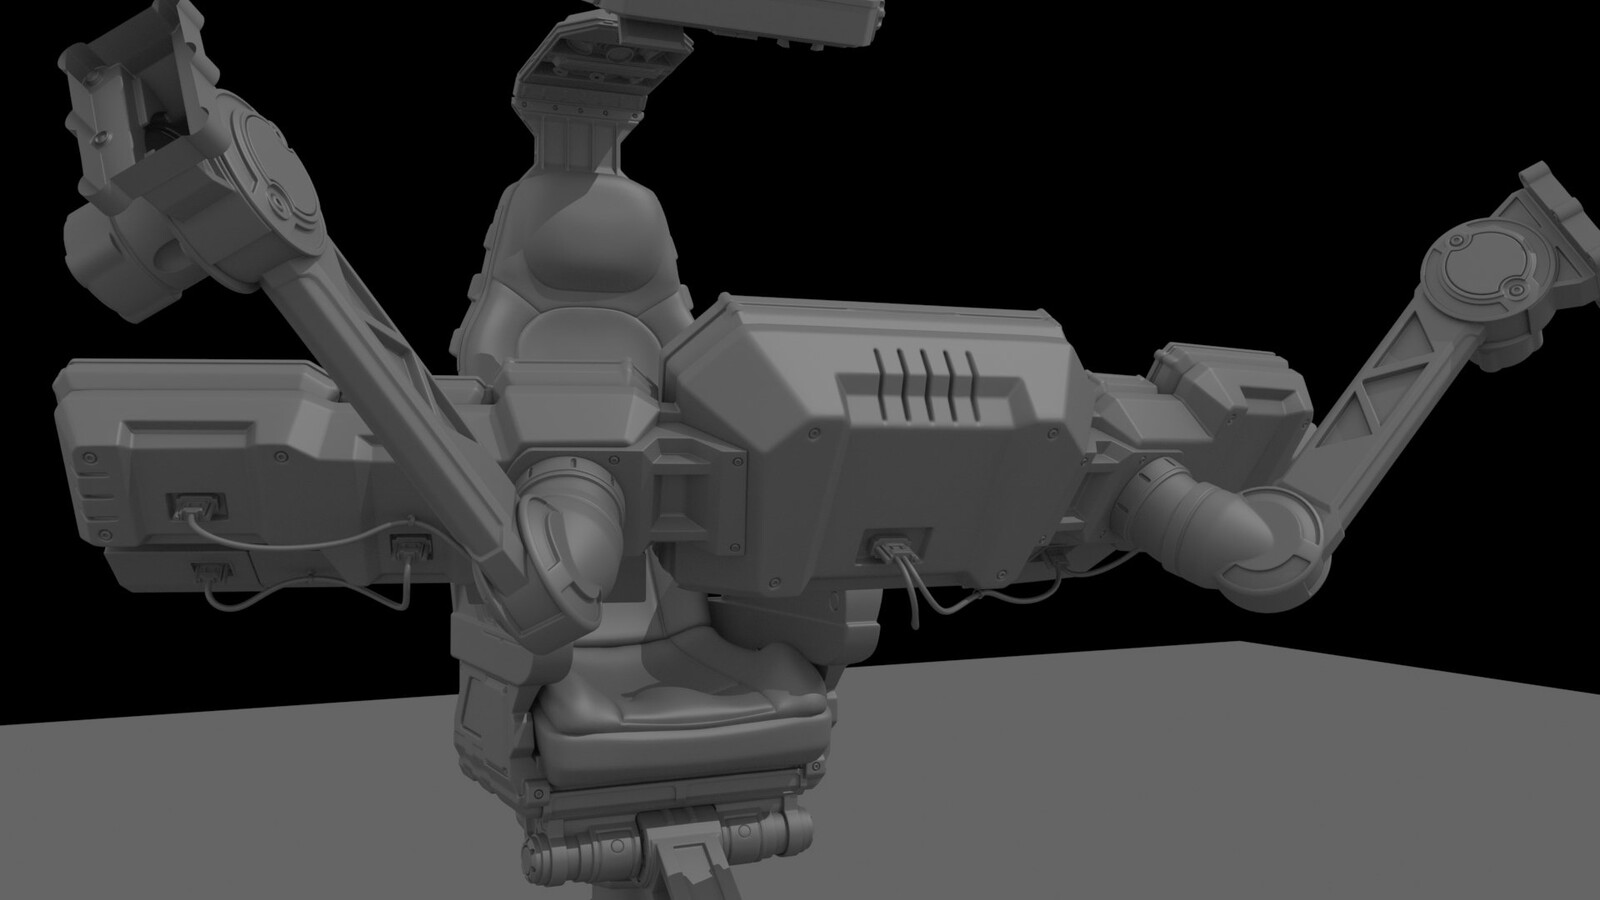 Quite happy with the back cover of the screens and the arms system to be able to move them.